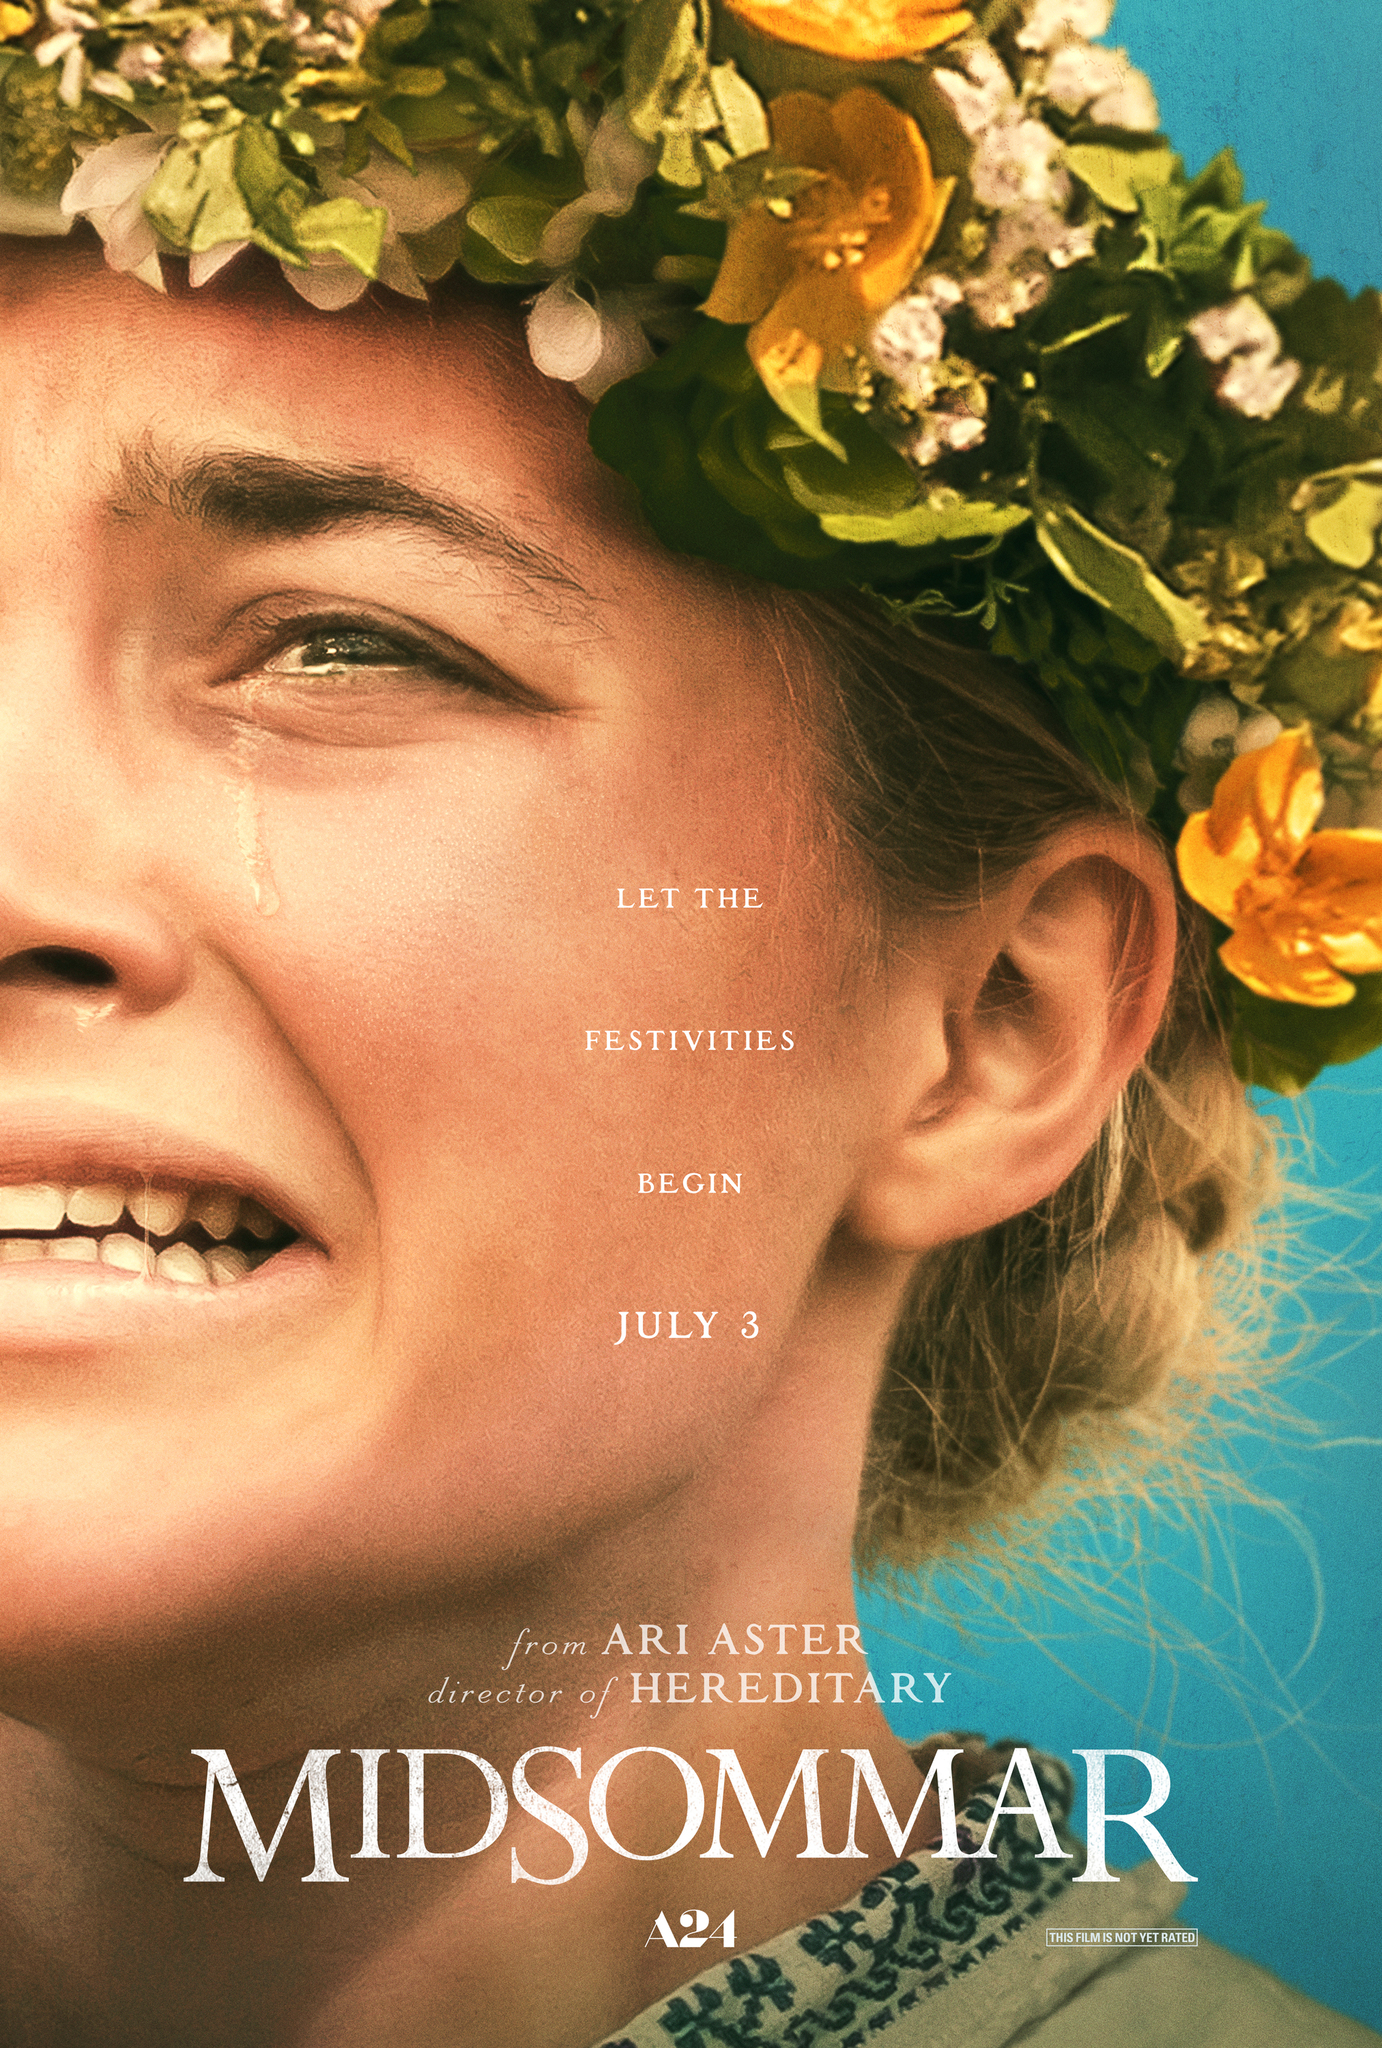 Midsommar film review: the journey is the destination